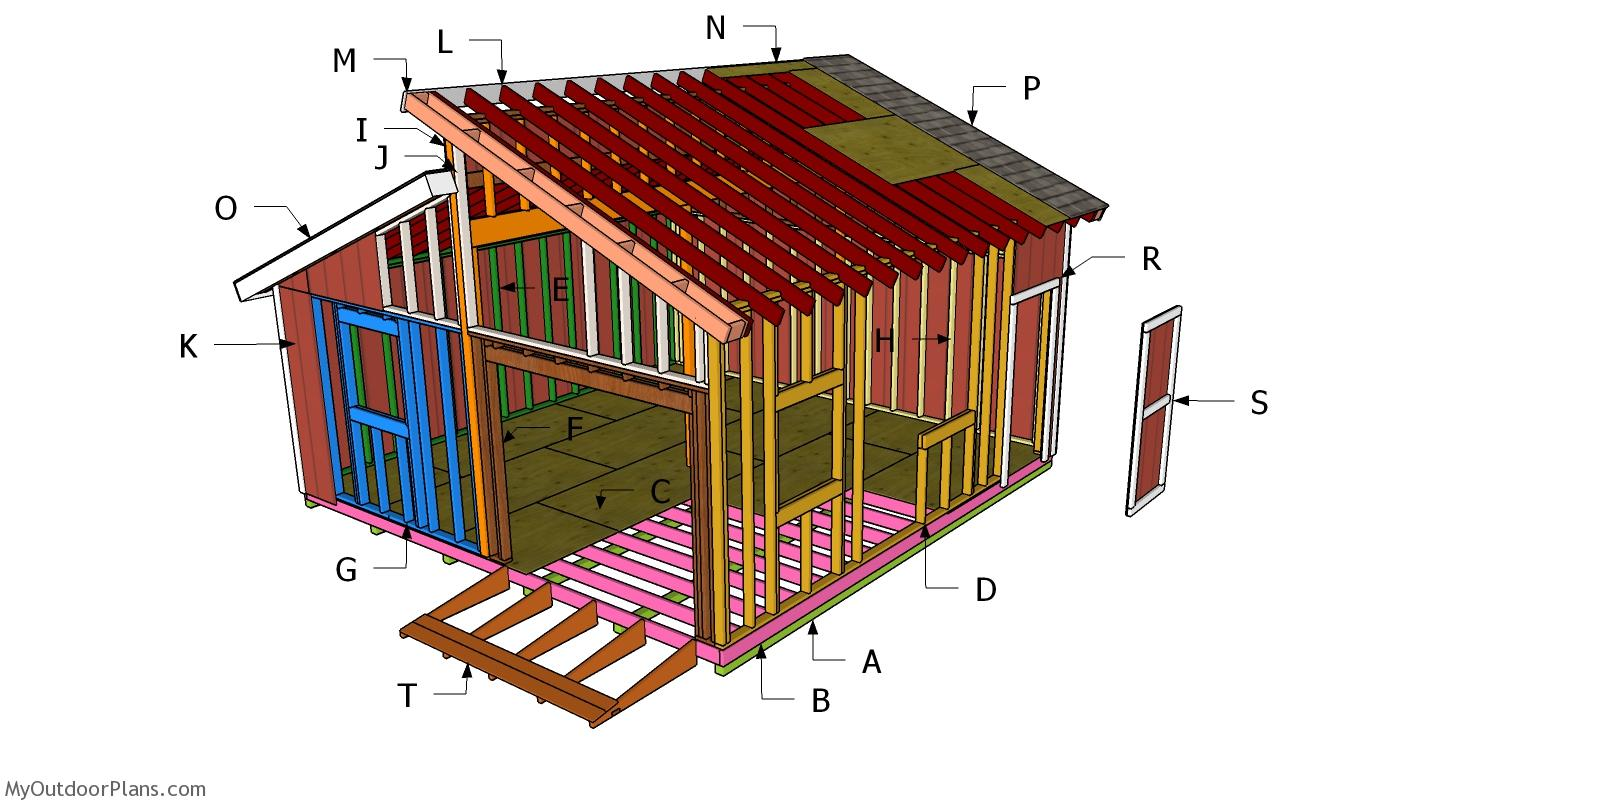 20x20 Clerestory Shed Roof Plans